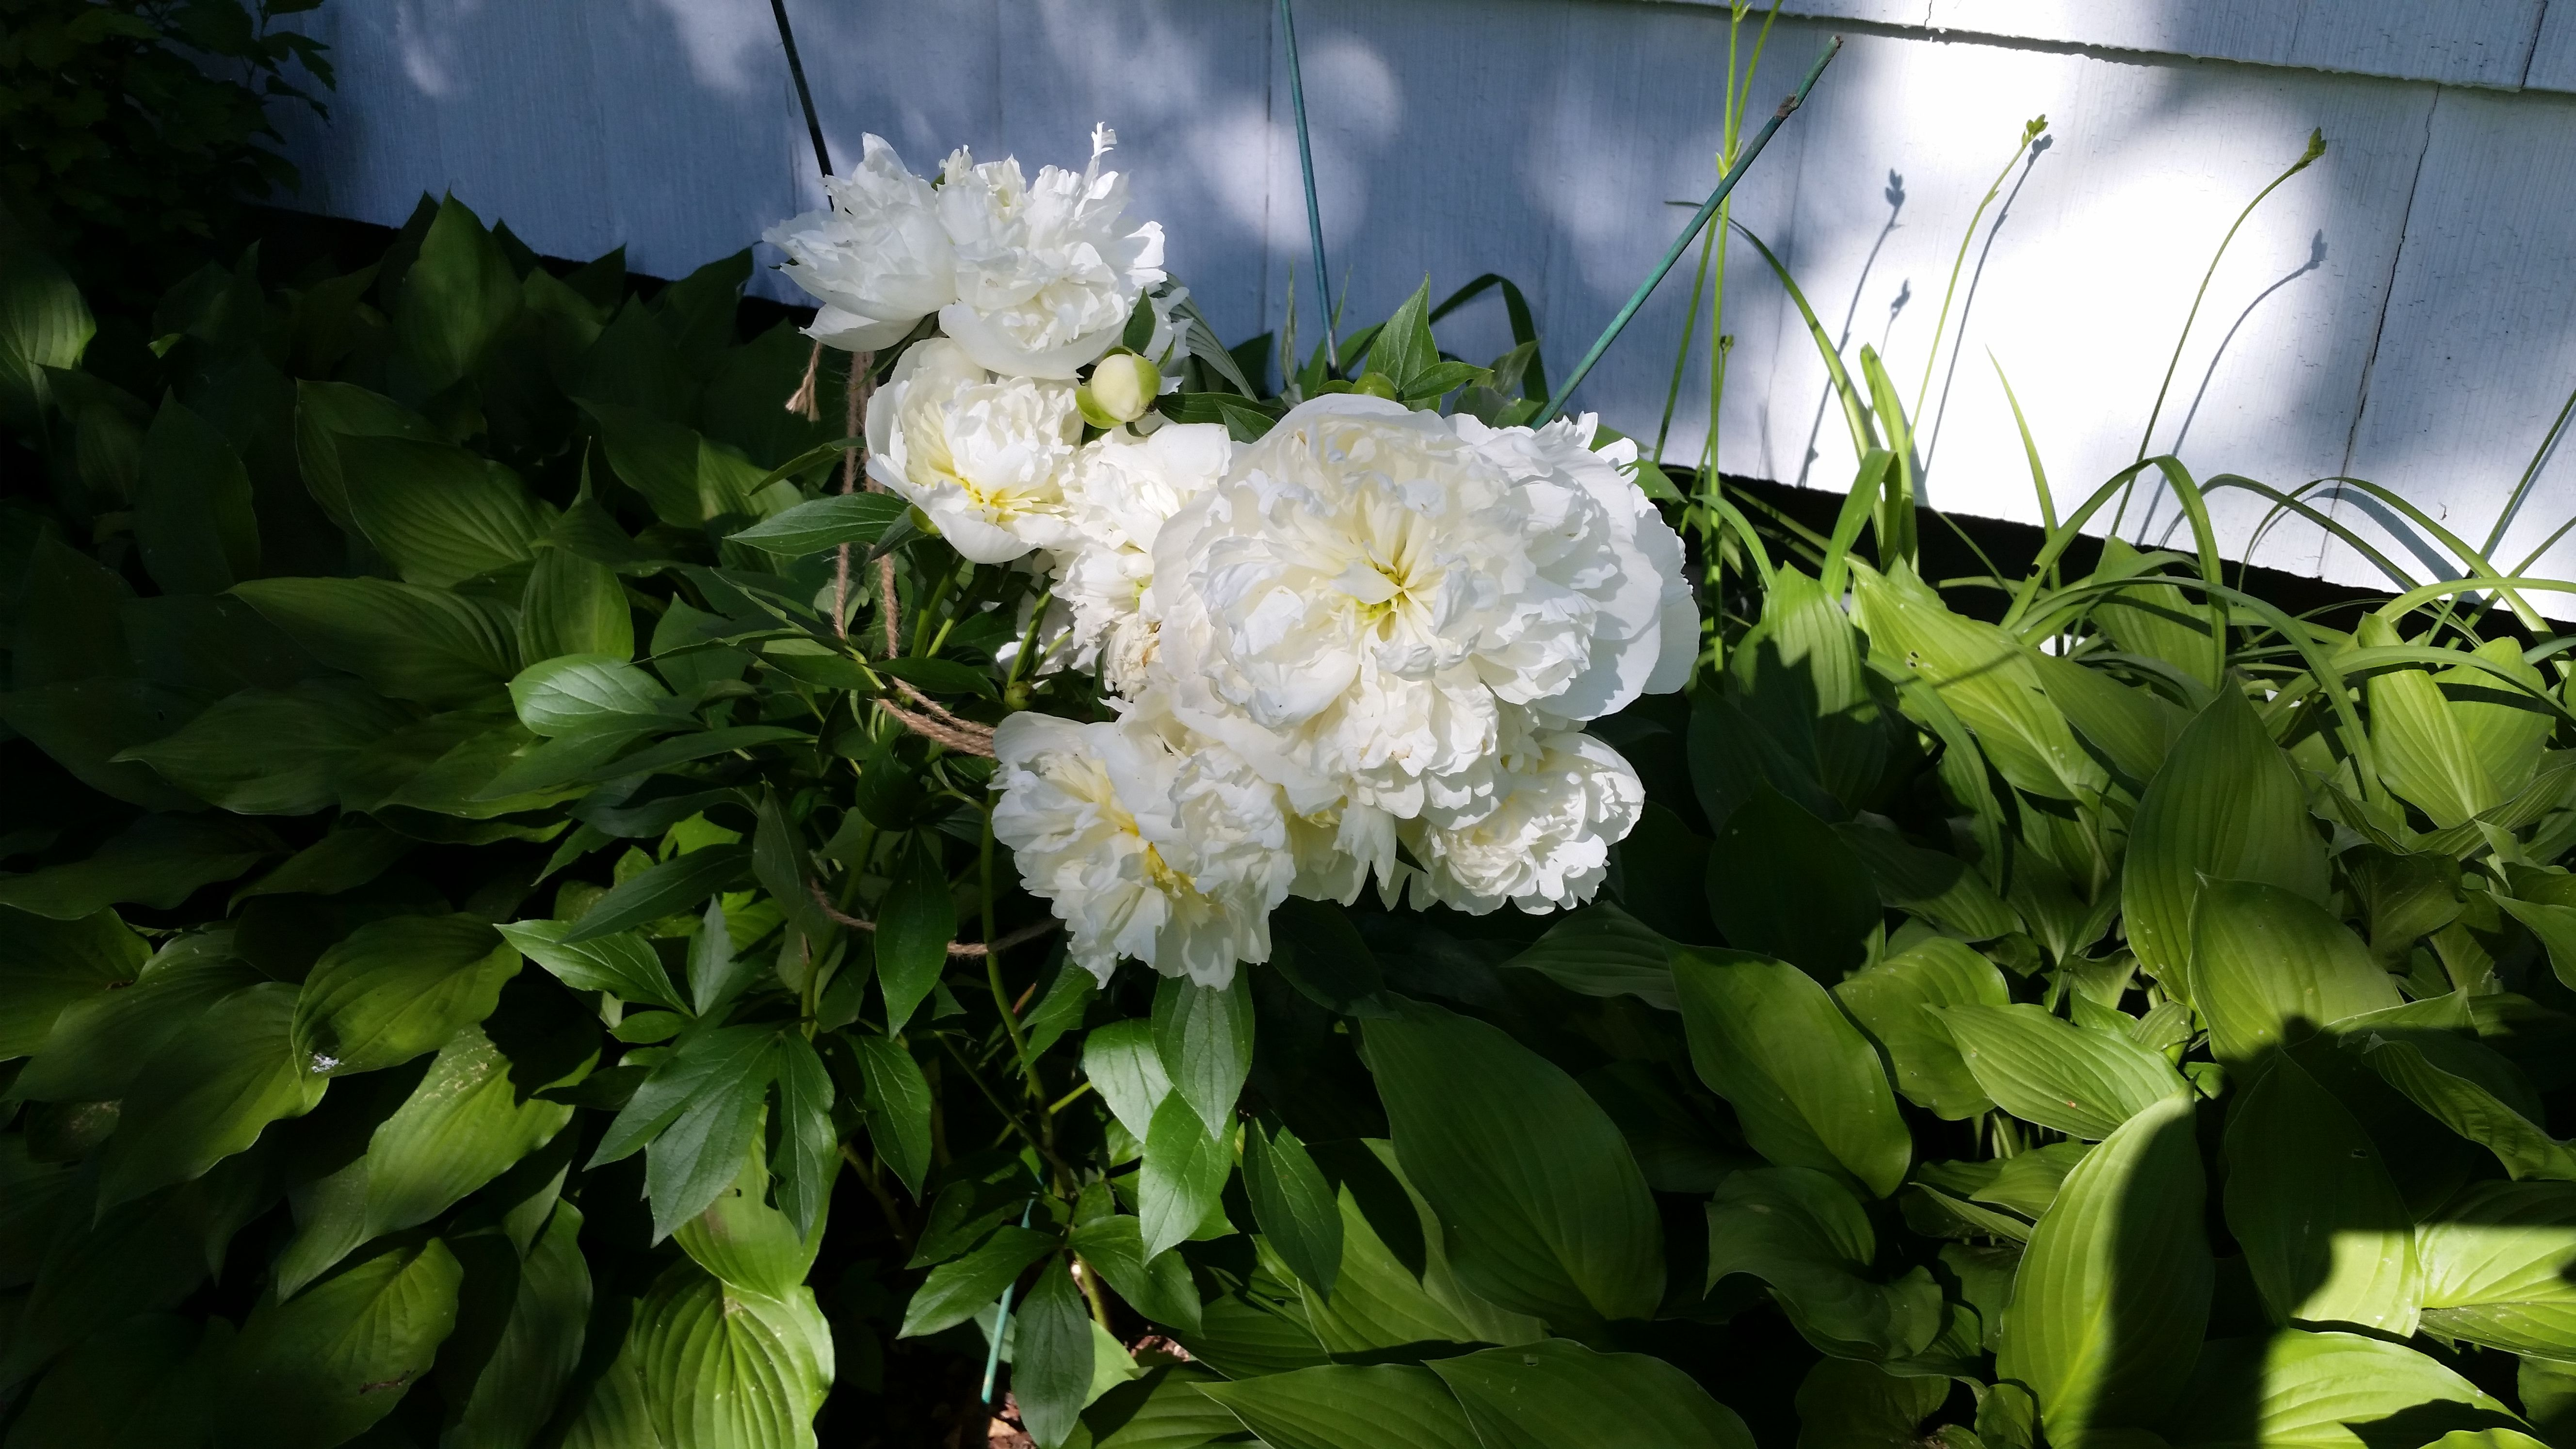 Peonies! #gardening #garden #DIY #home #flowers #roses #nature #landscaping #horticulture